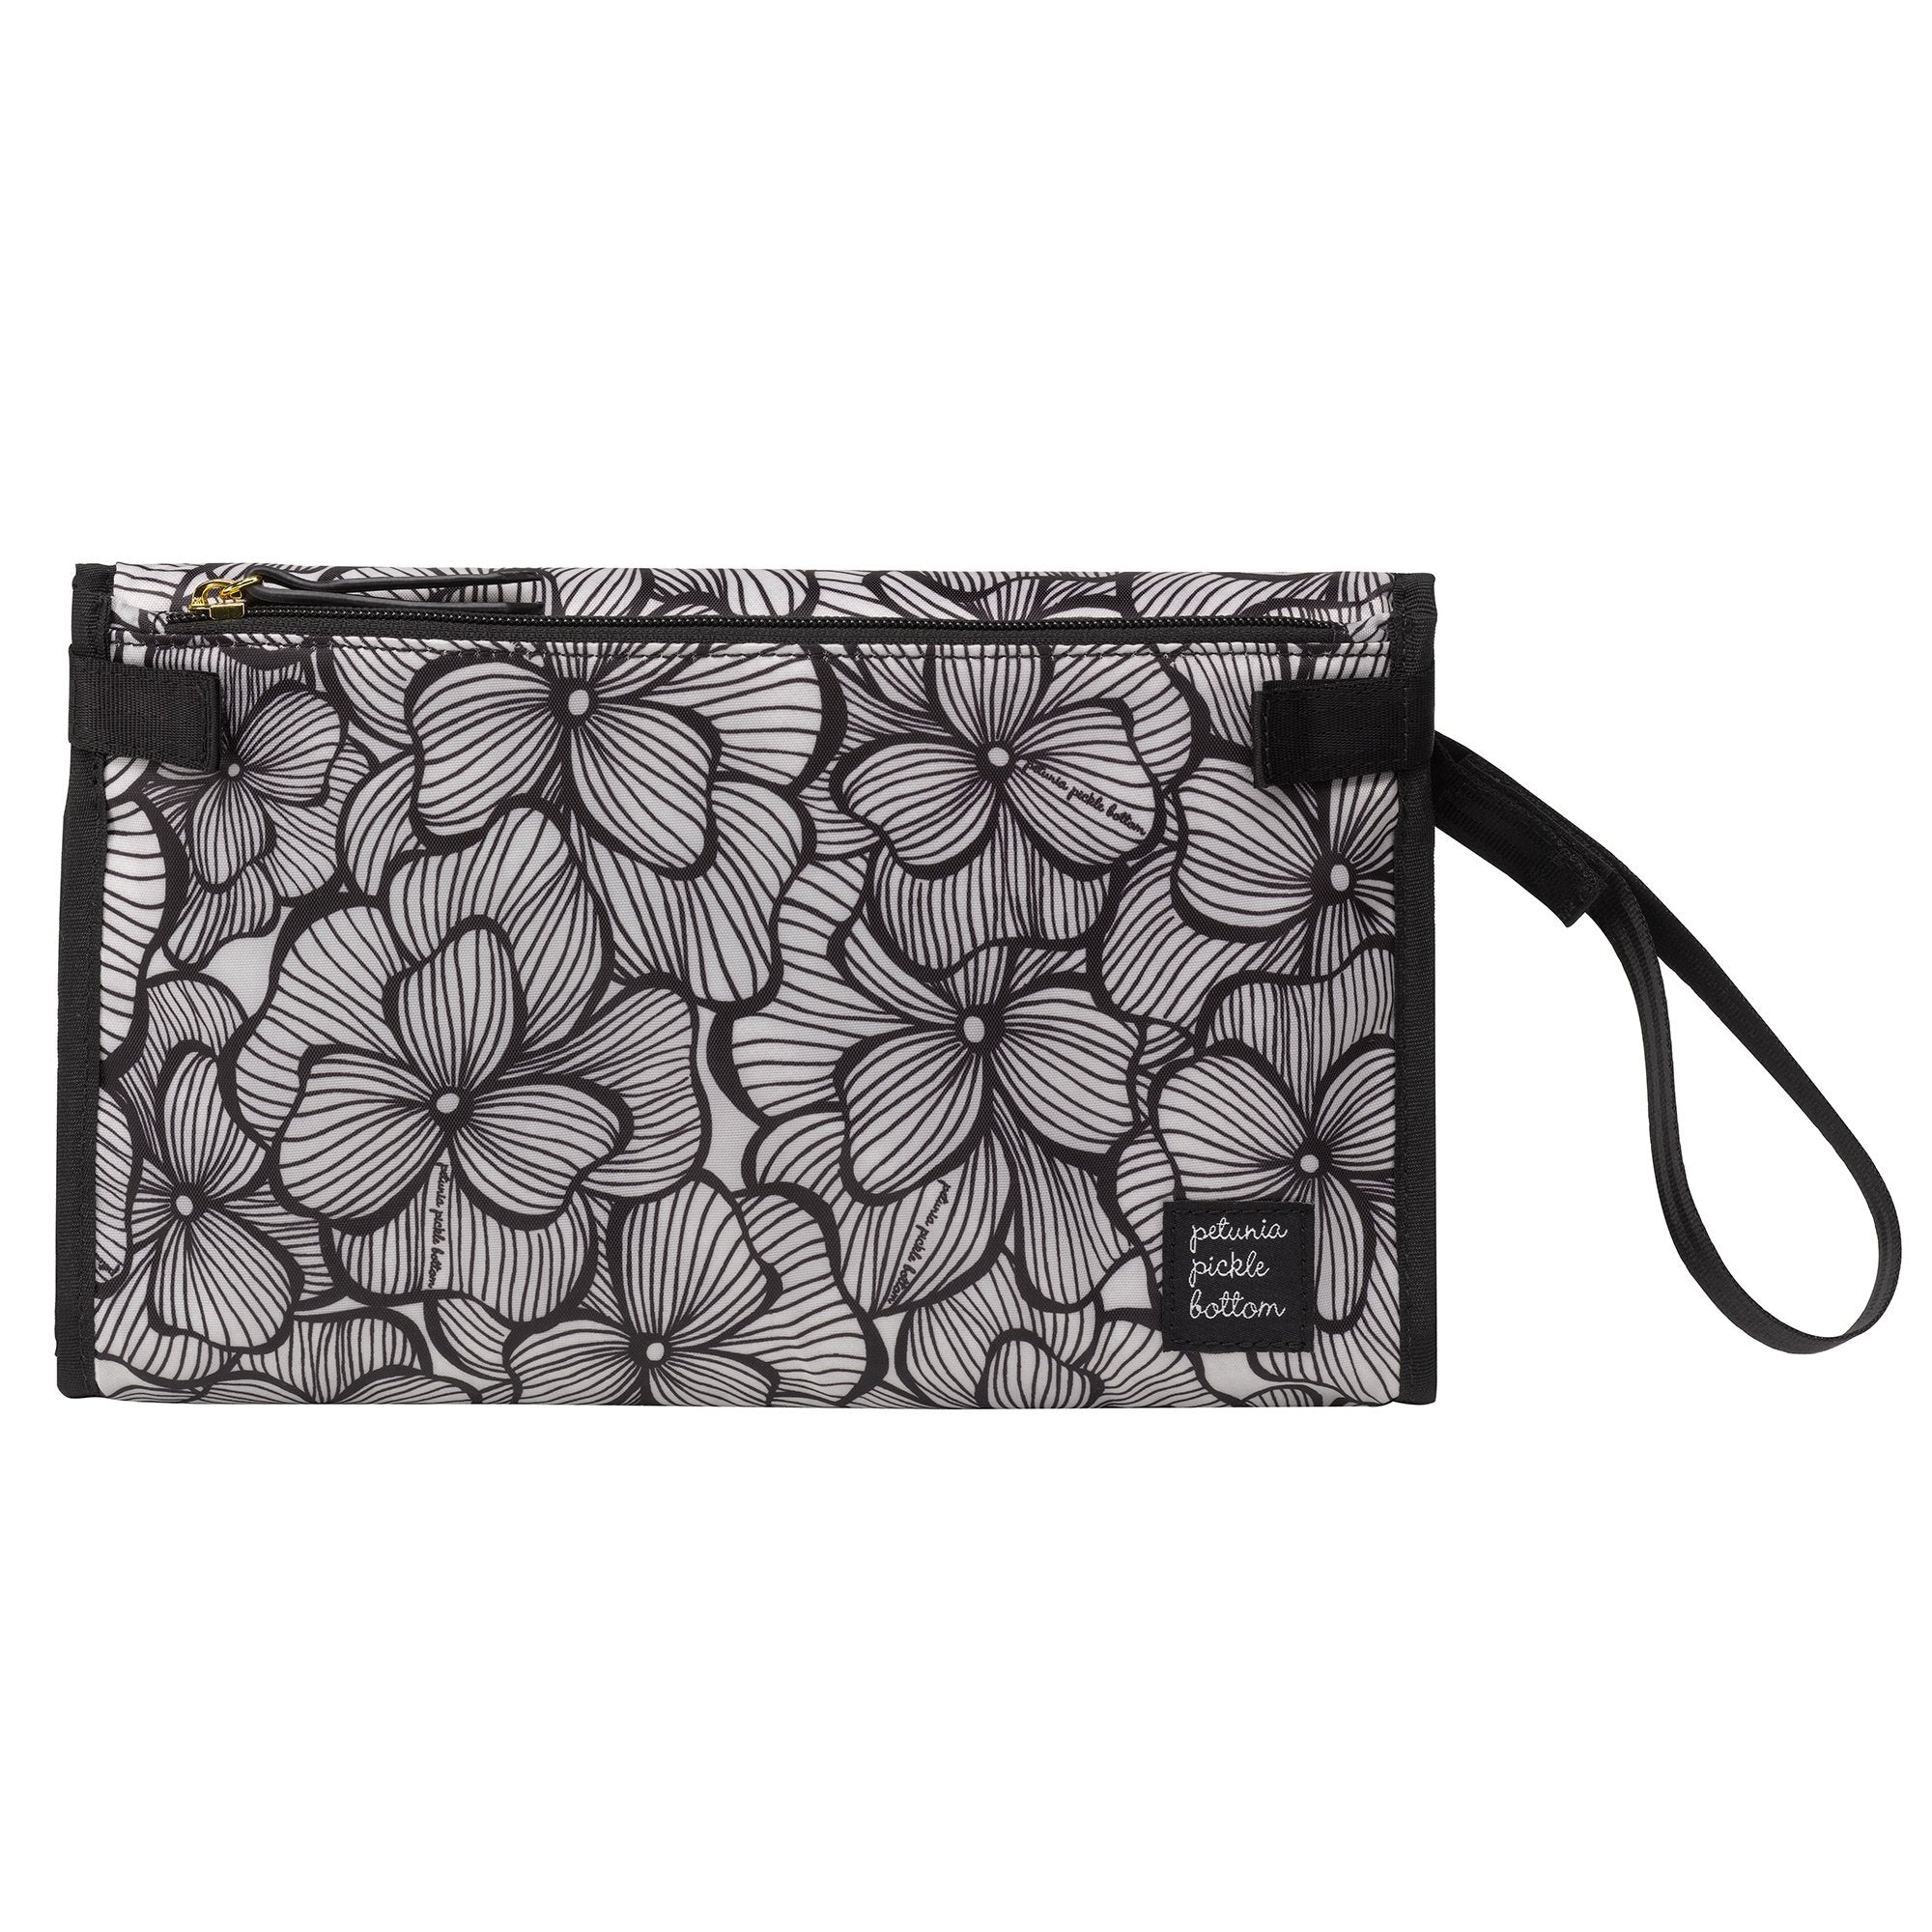 Petunia Pickle Bottom Nimble Changer Clutch: Bordeaux Blooms